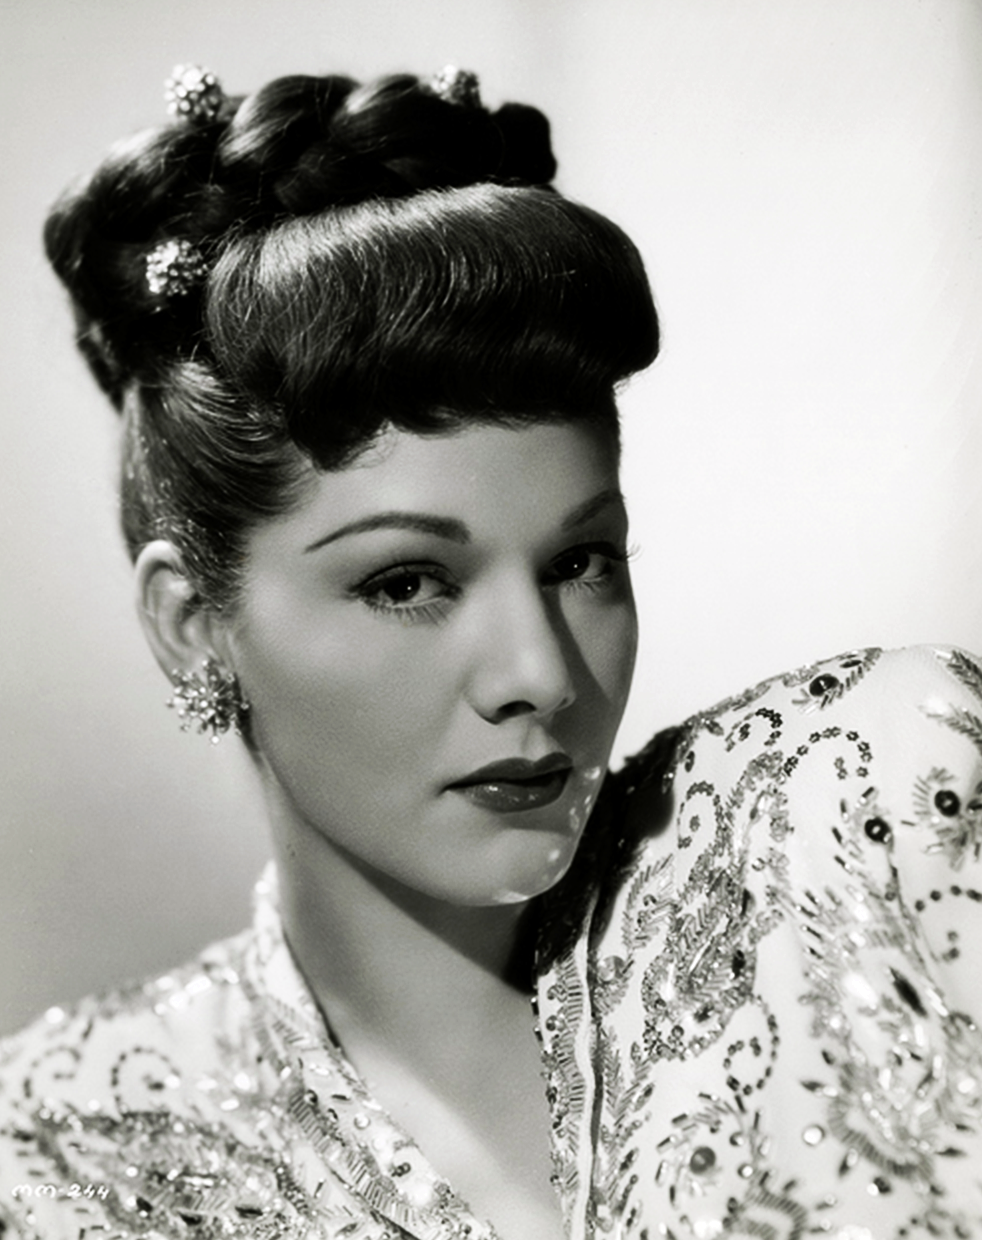 maria montez - love her hair here (bangs + braid). #vintage #1940s